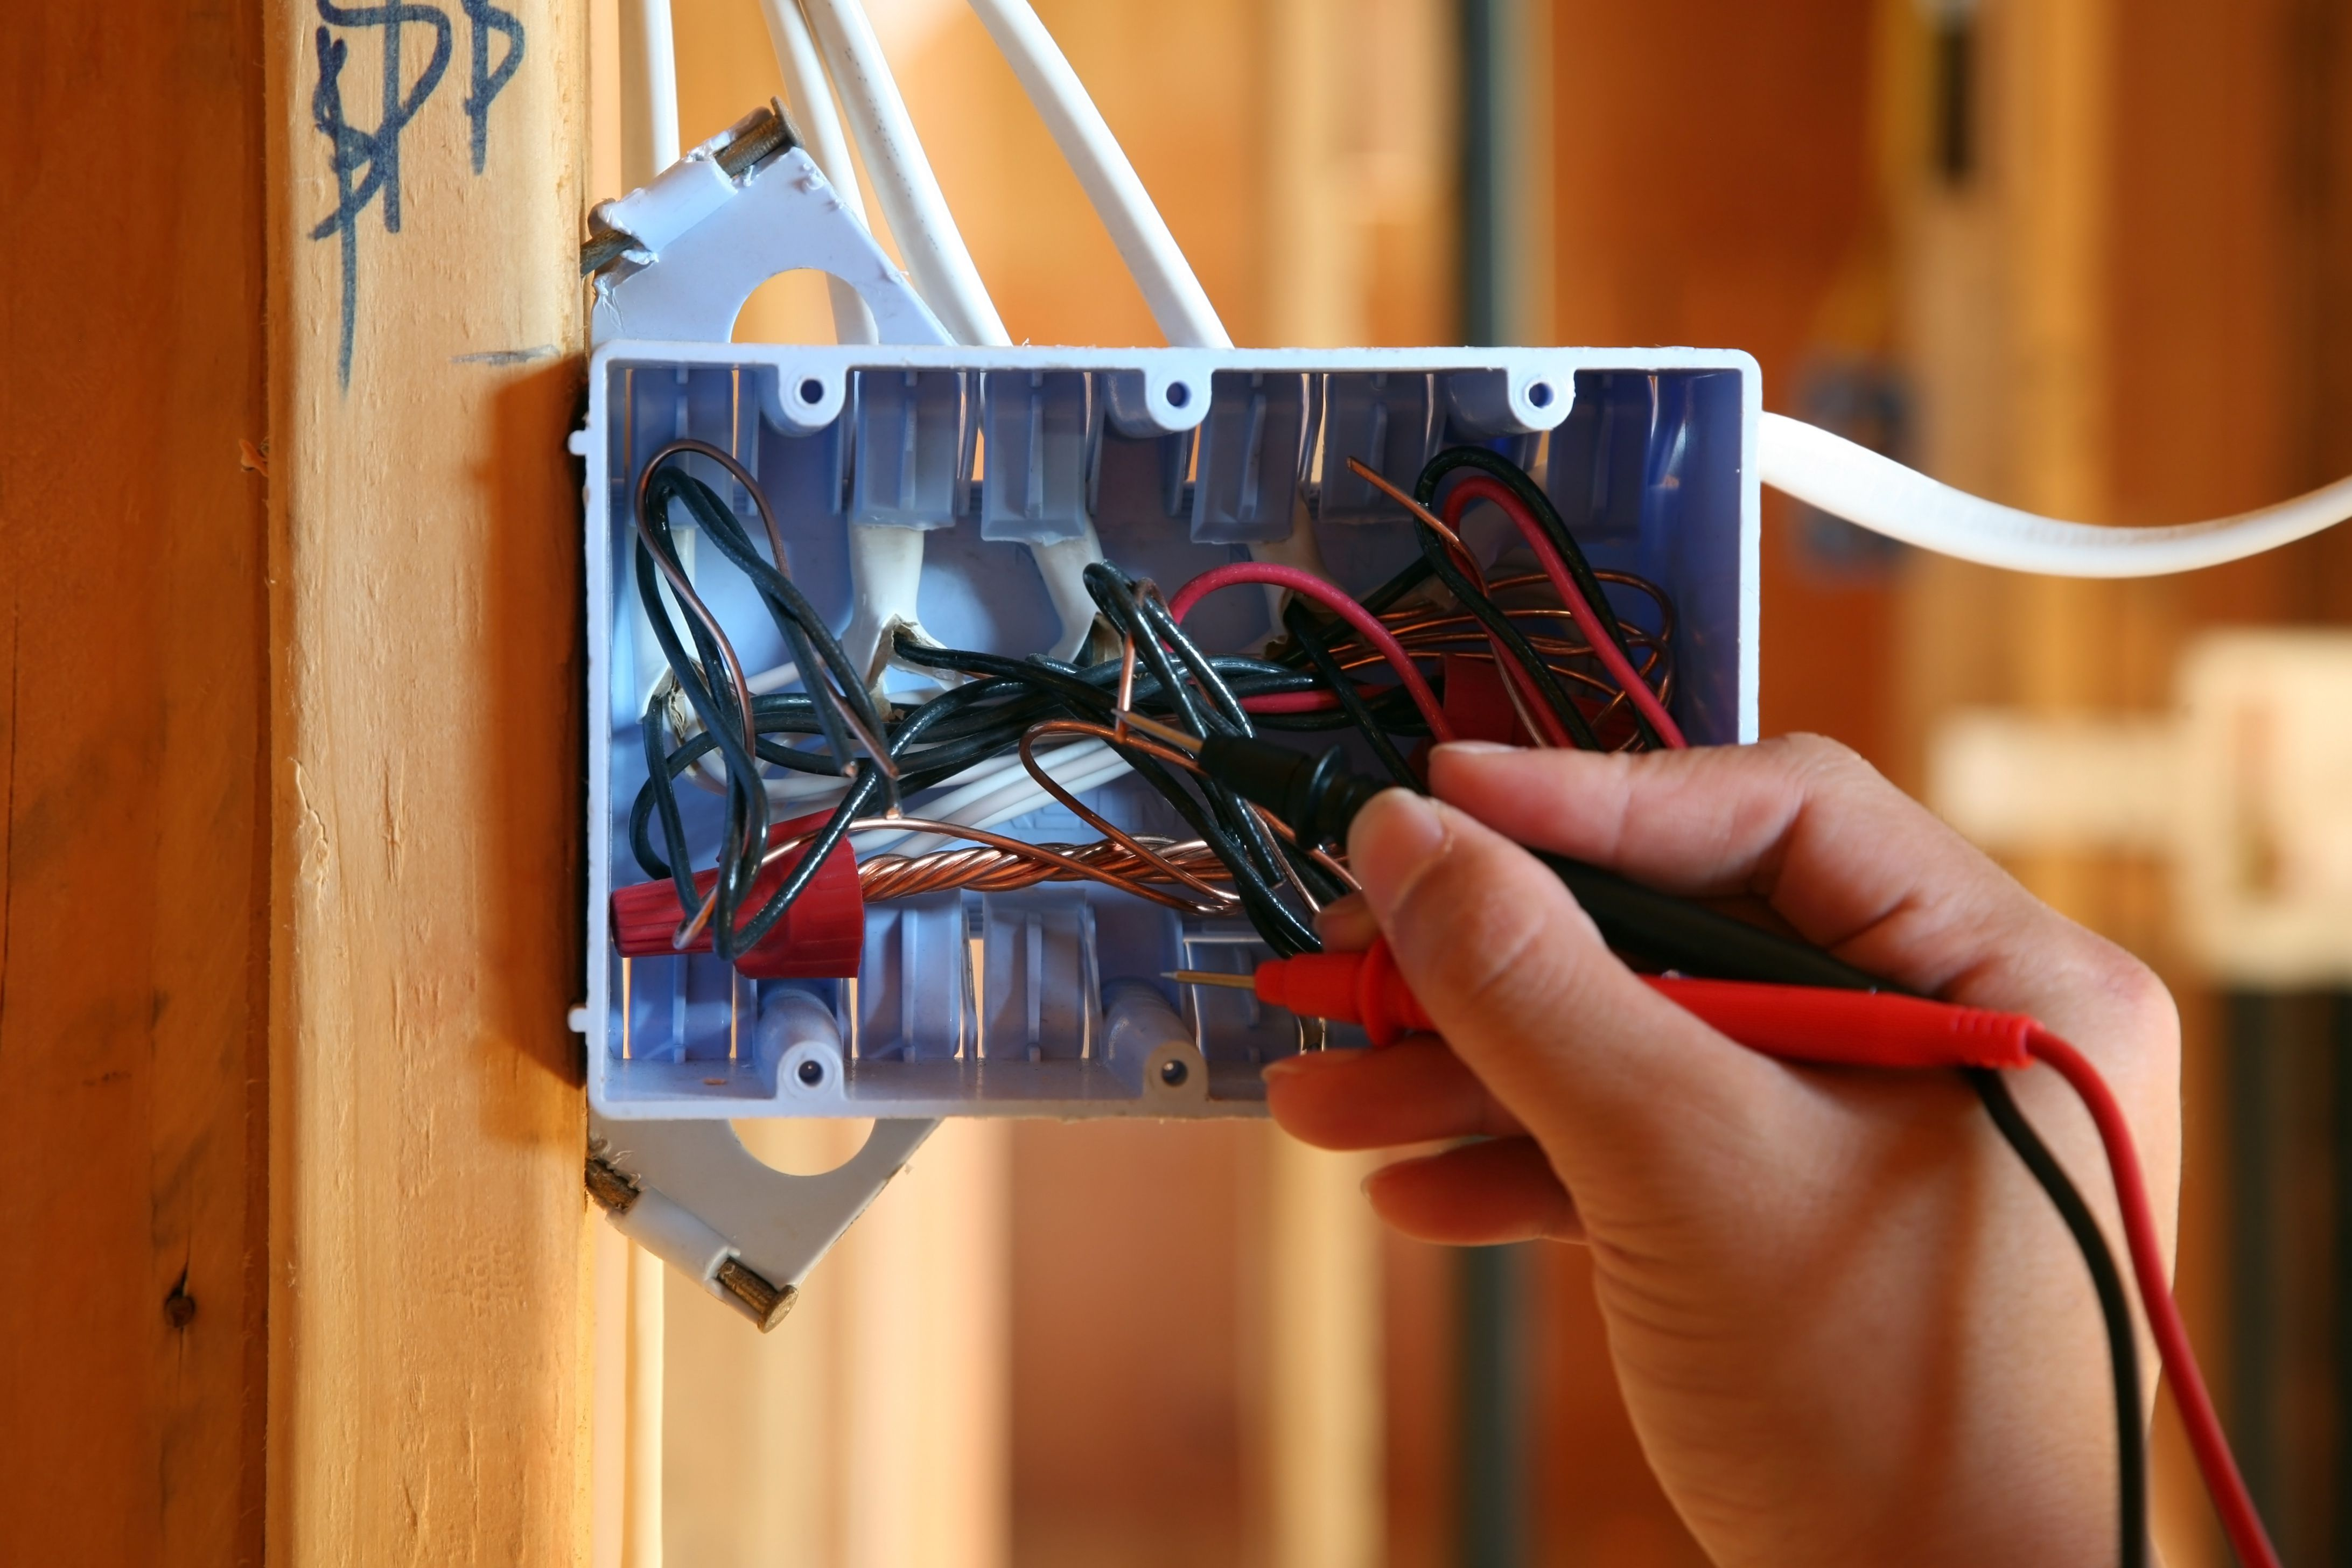 Receptacle Boxes And Cable Installation Codes Wiring A House